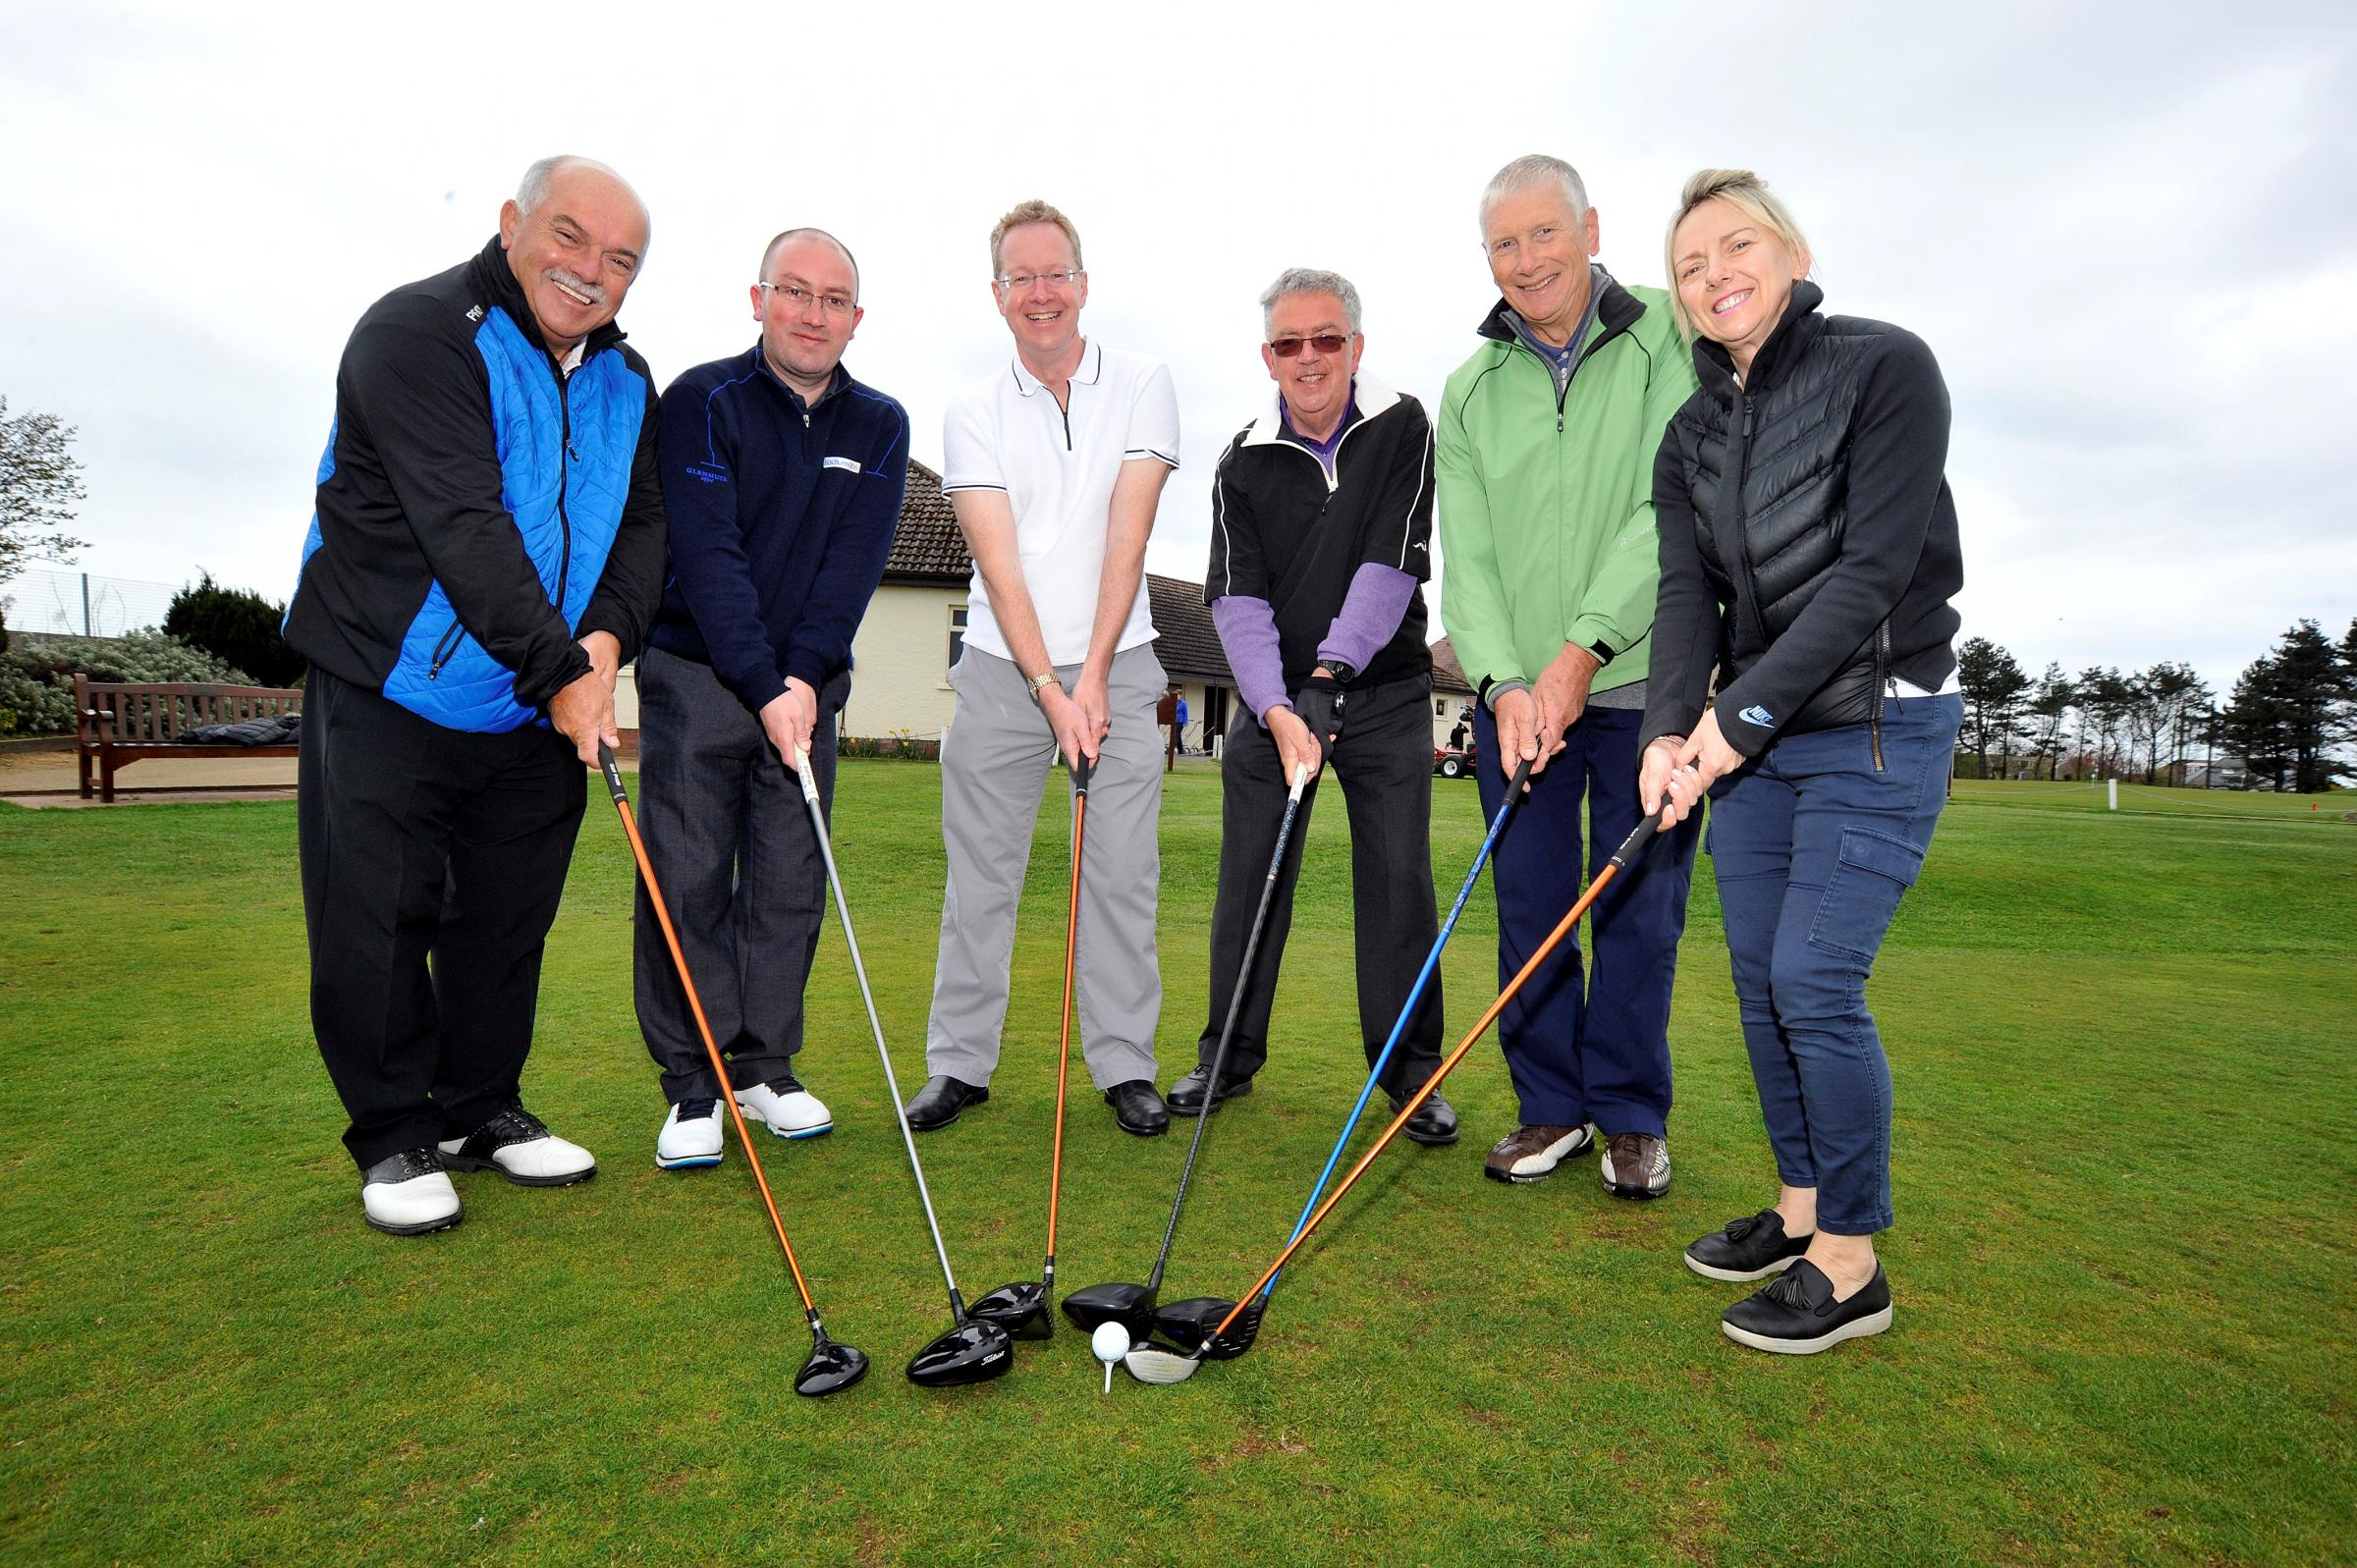 Golfers tee off at charity fundraiser for Hansel